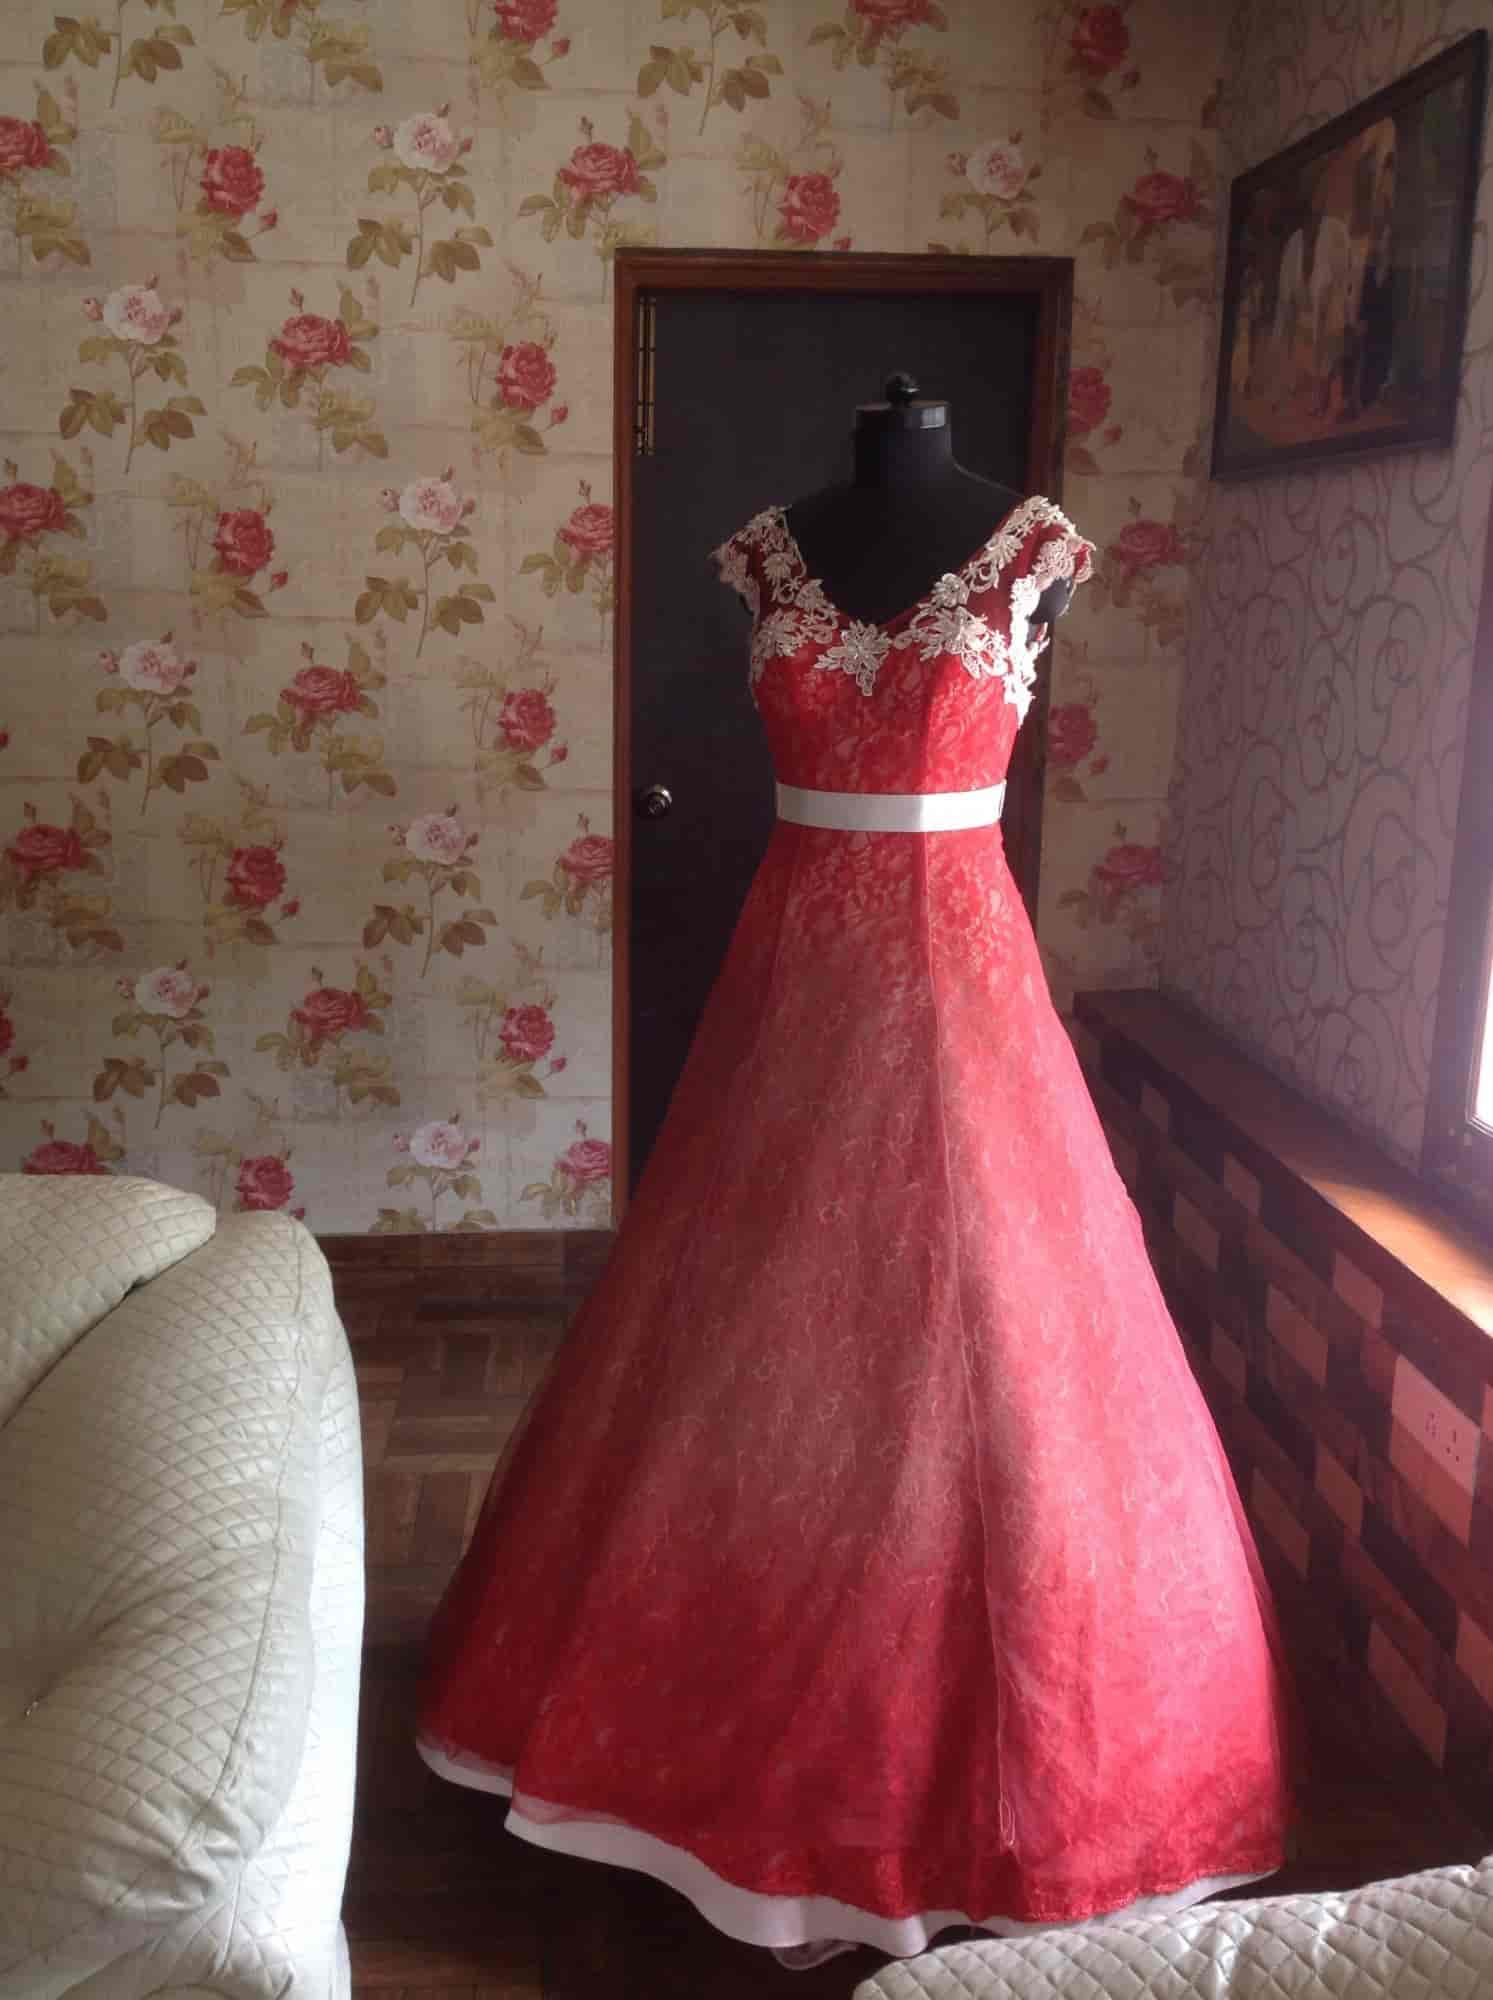 Zenias Bridal Gowns, CMC - Bridal Gown in Ludhiana - Justdial